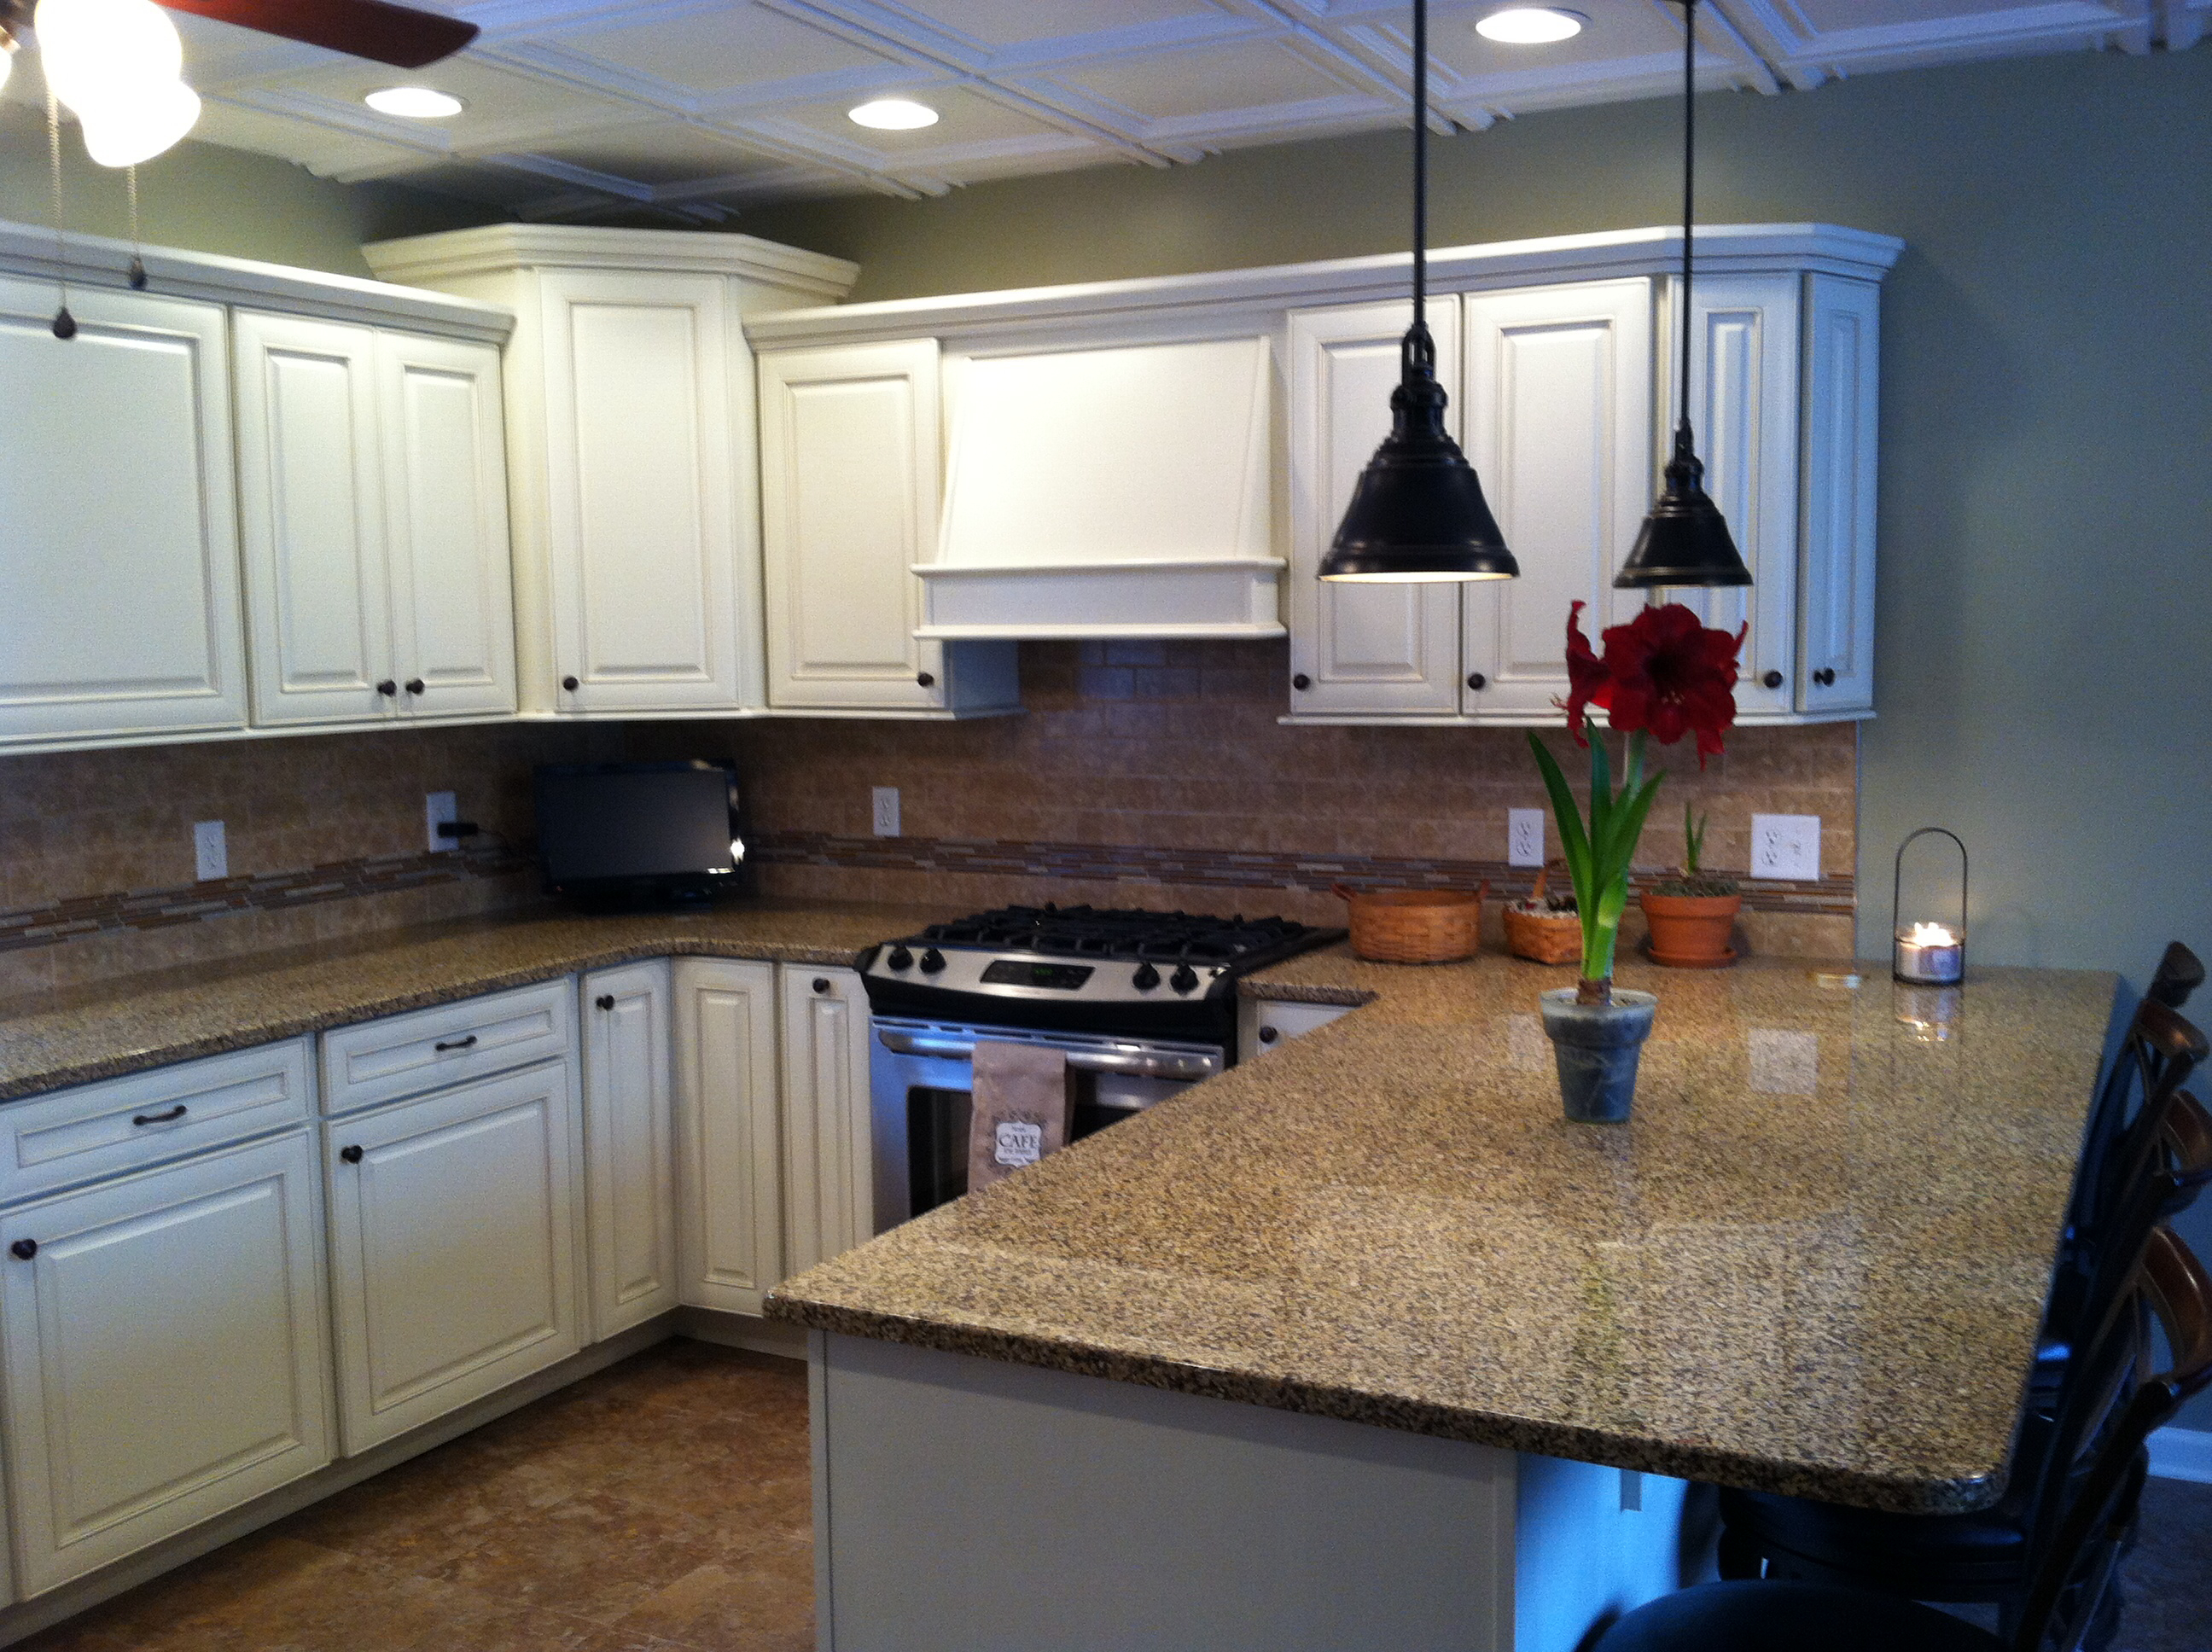 The quality of nor craft cabinetry home and cabinet reviews - Kemper kitchen cabinets reviews ...